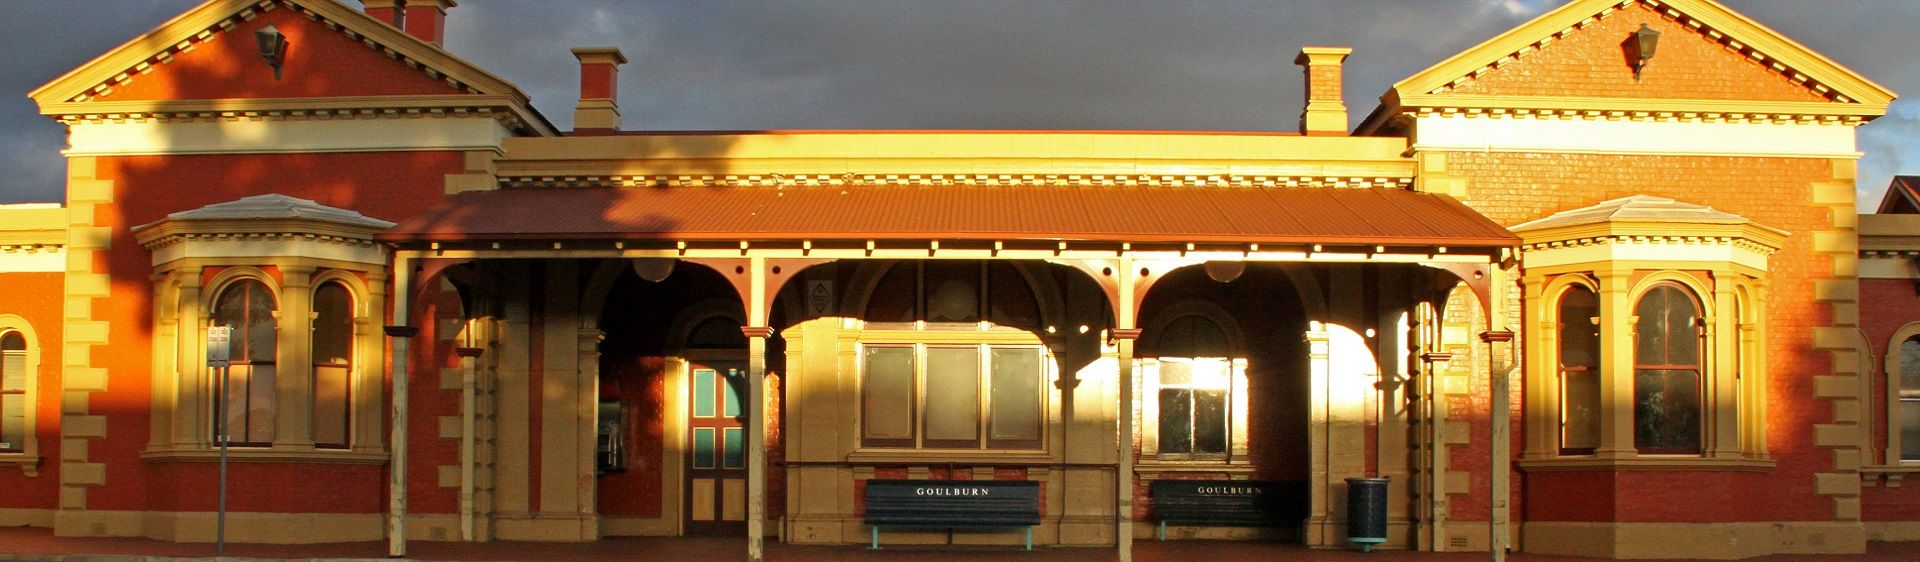 Goulburn - Goulburn train station